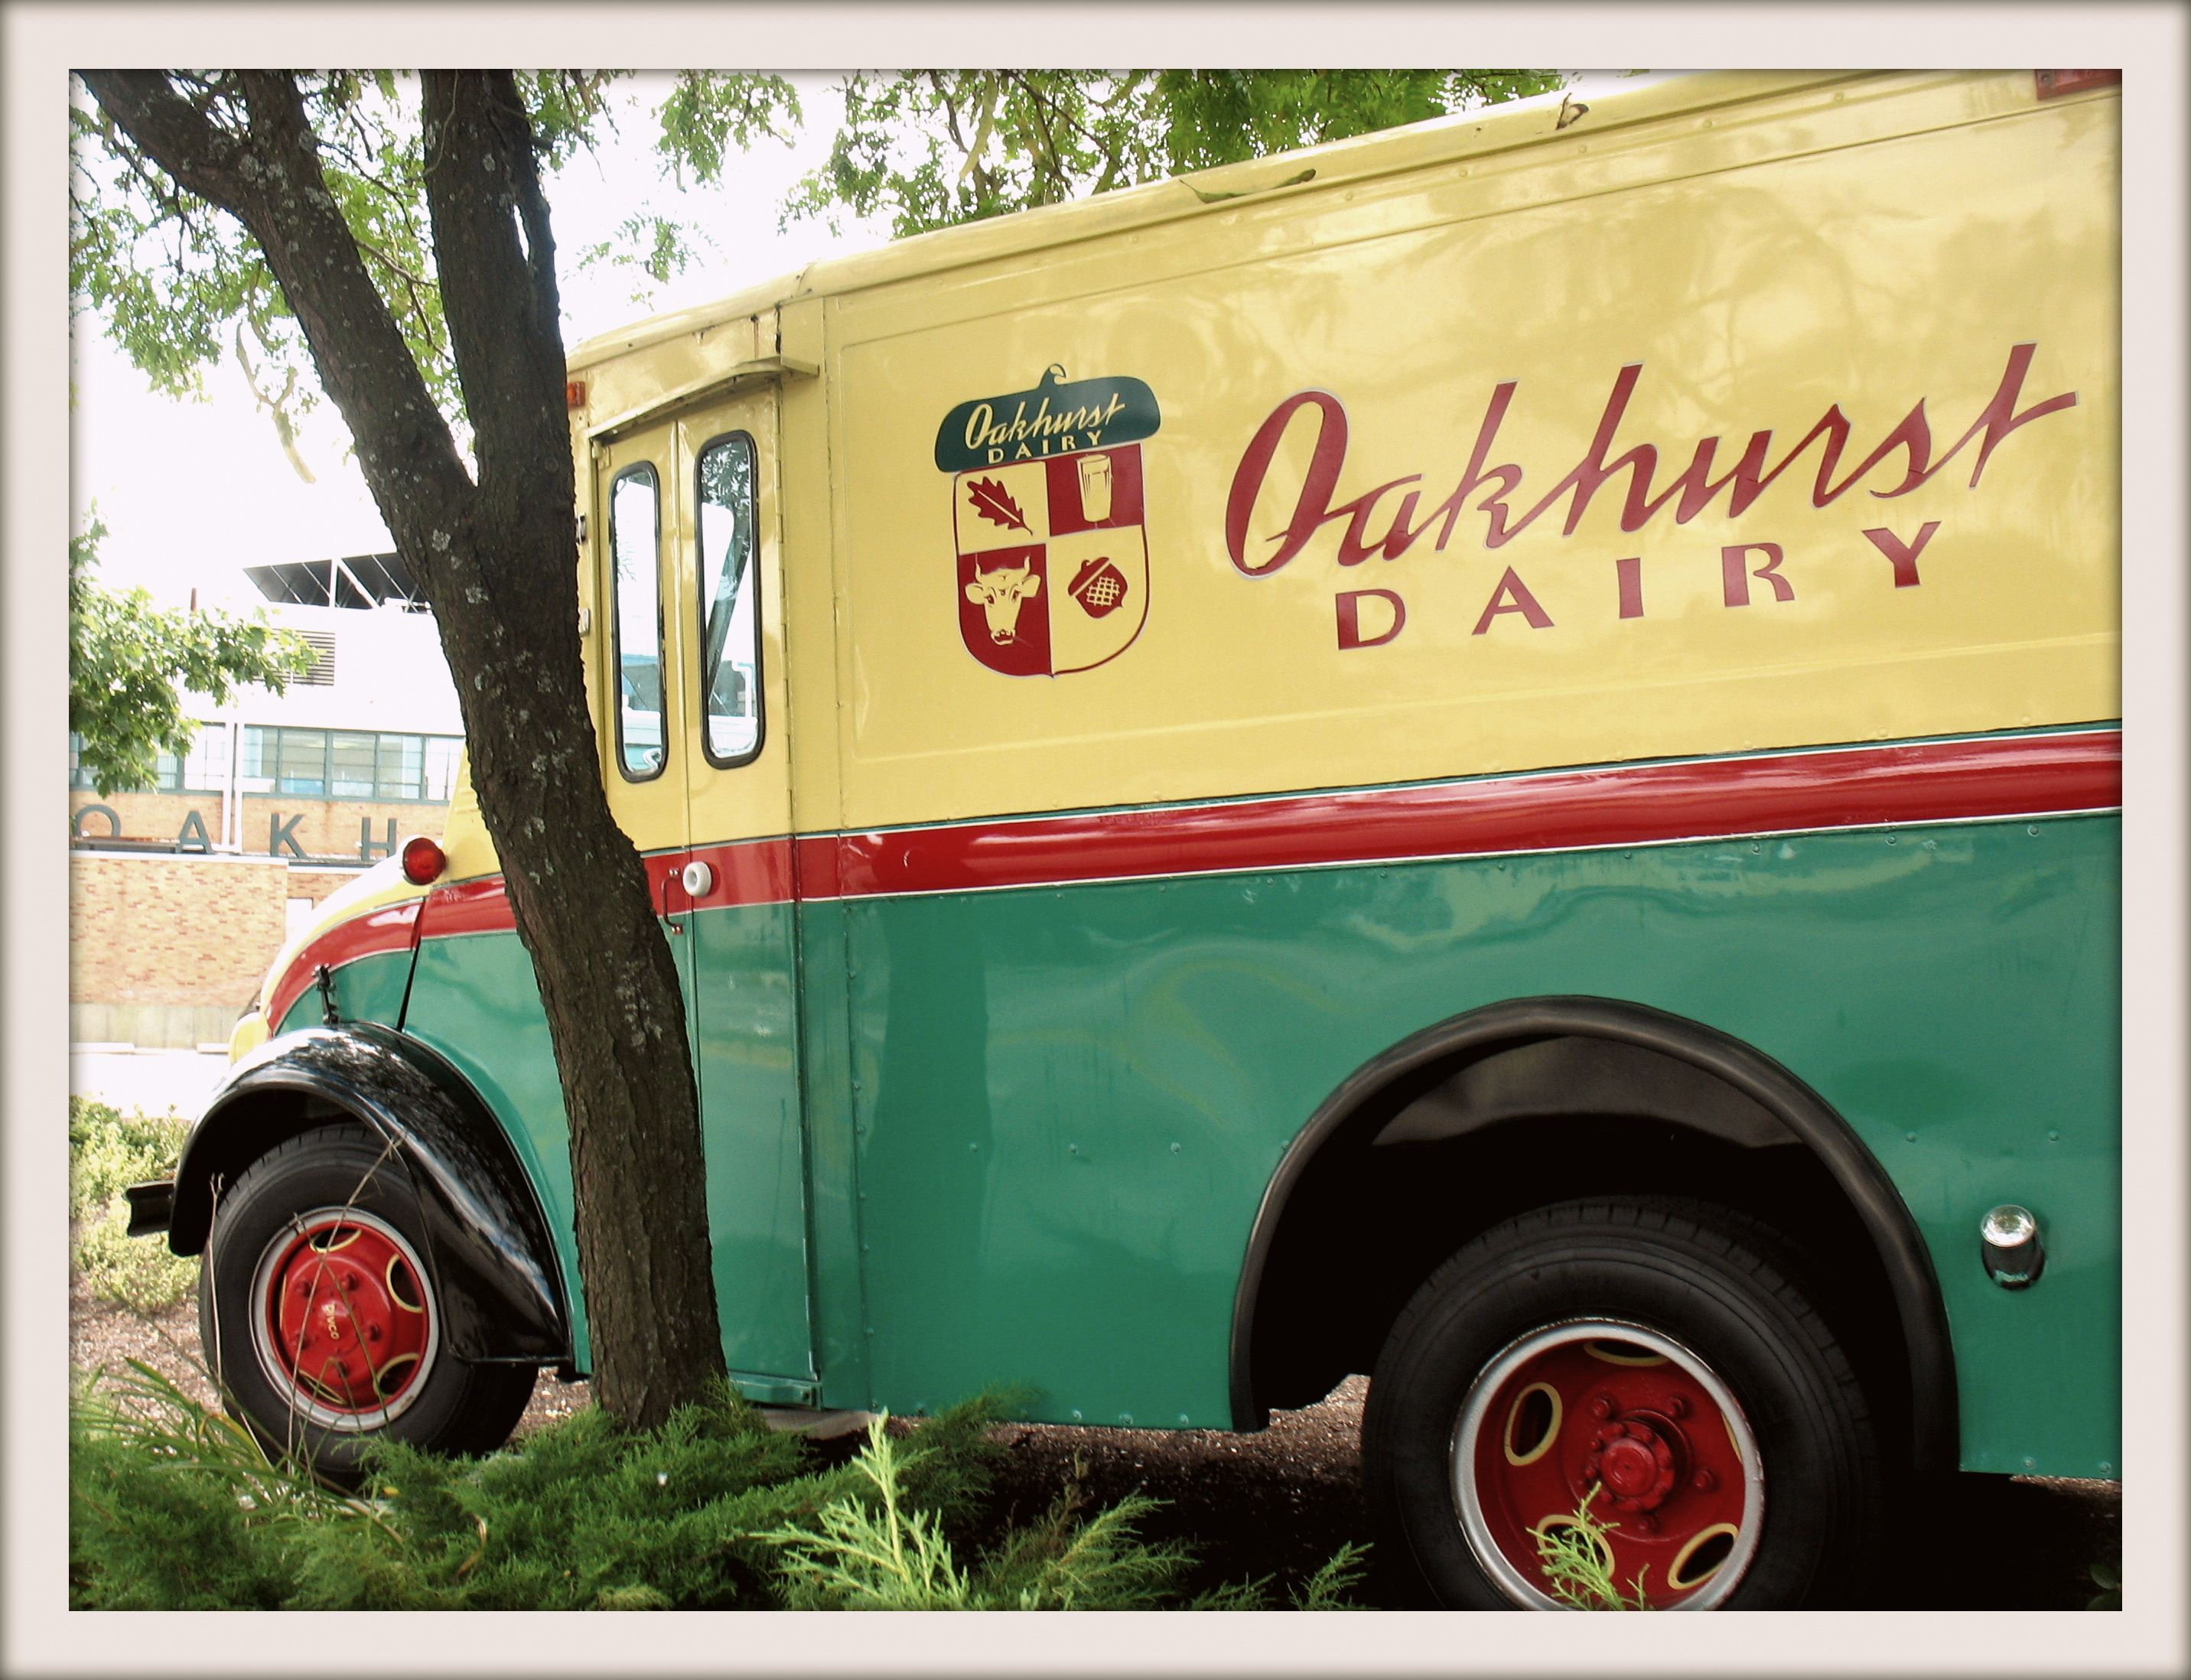 September 10th 2012 The Old Oakhurst Dairy Milk Delivery Truck Forest Avenue Truck Lettering Milk Delivery Classic Trucks